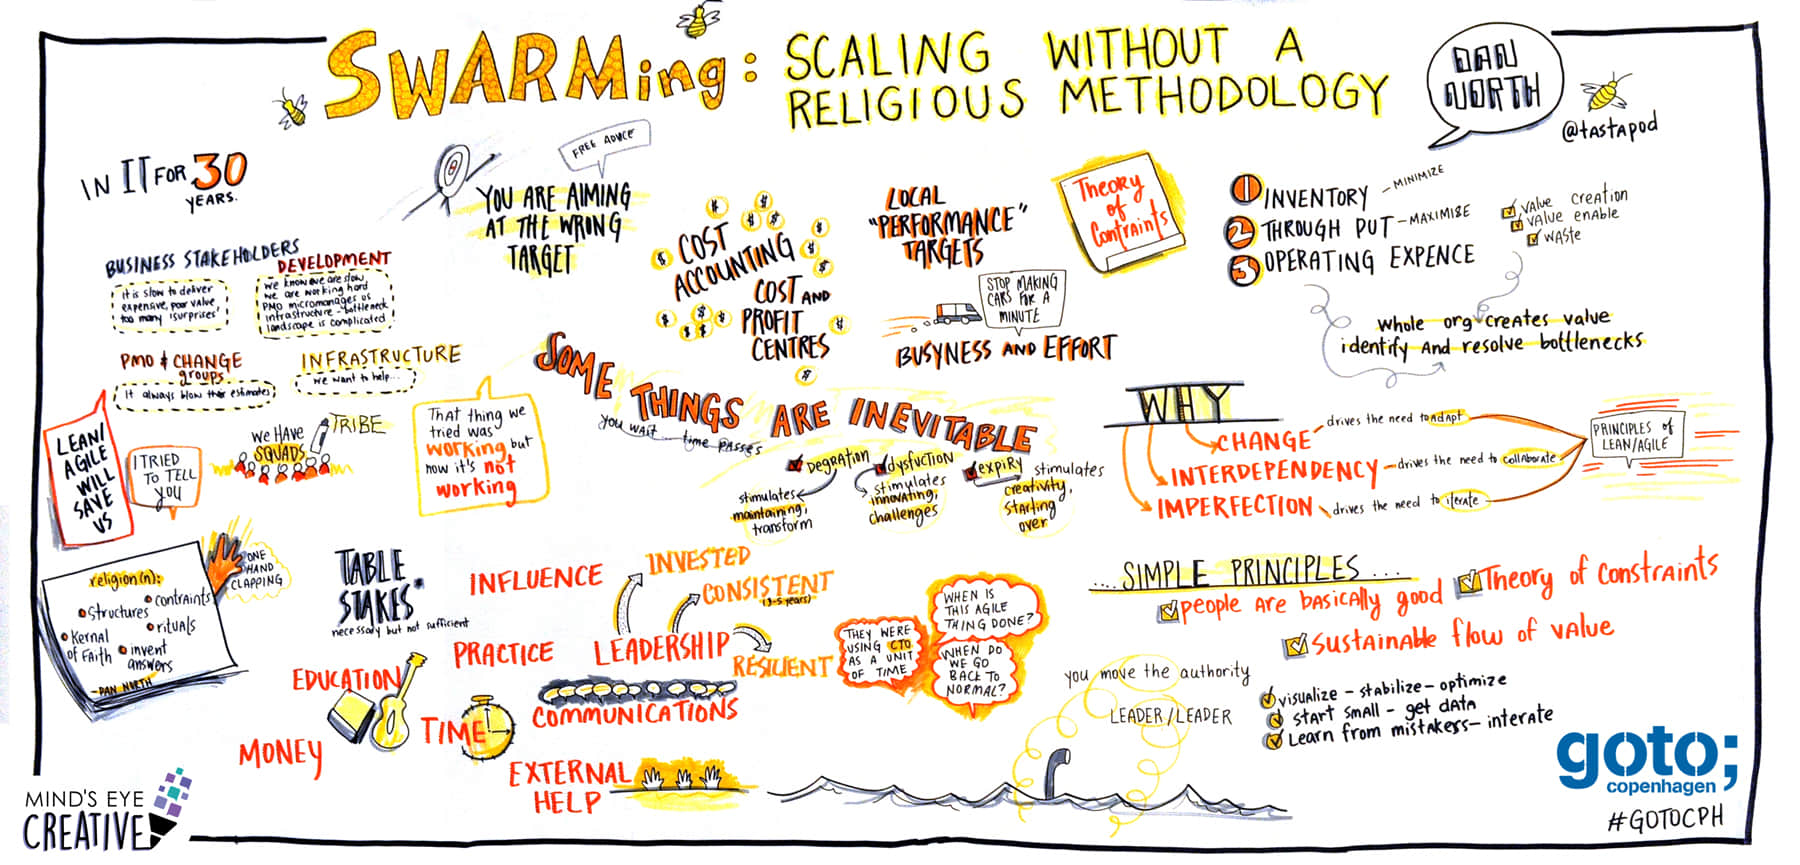 Graphic recording and event notes by Mind's Eye Creative